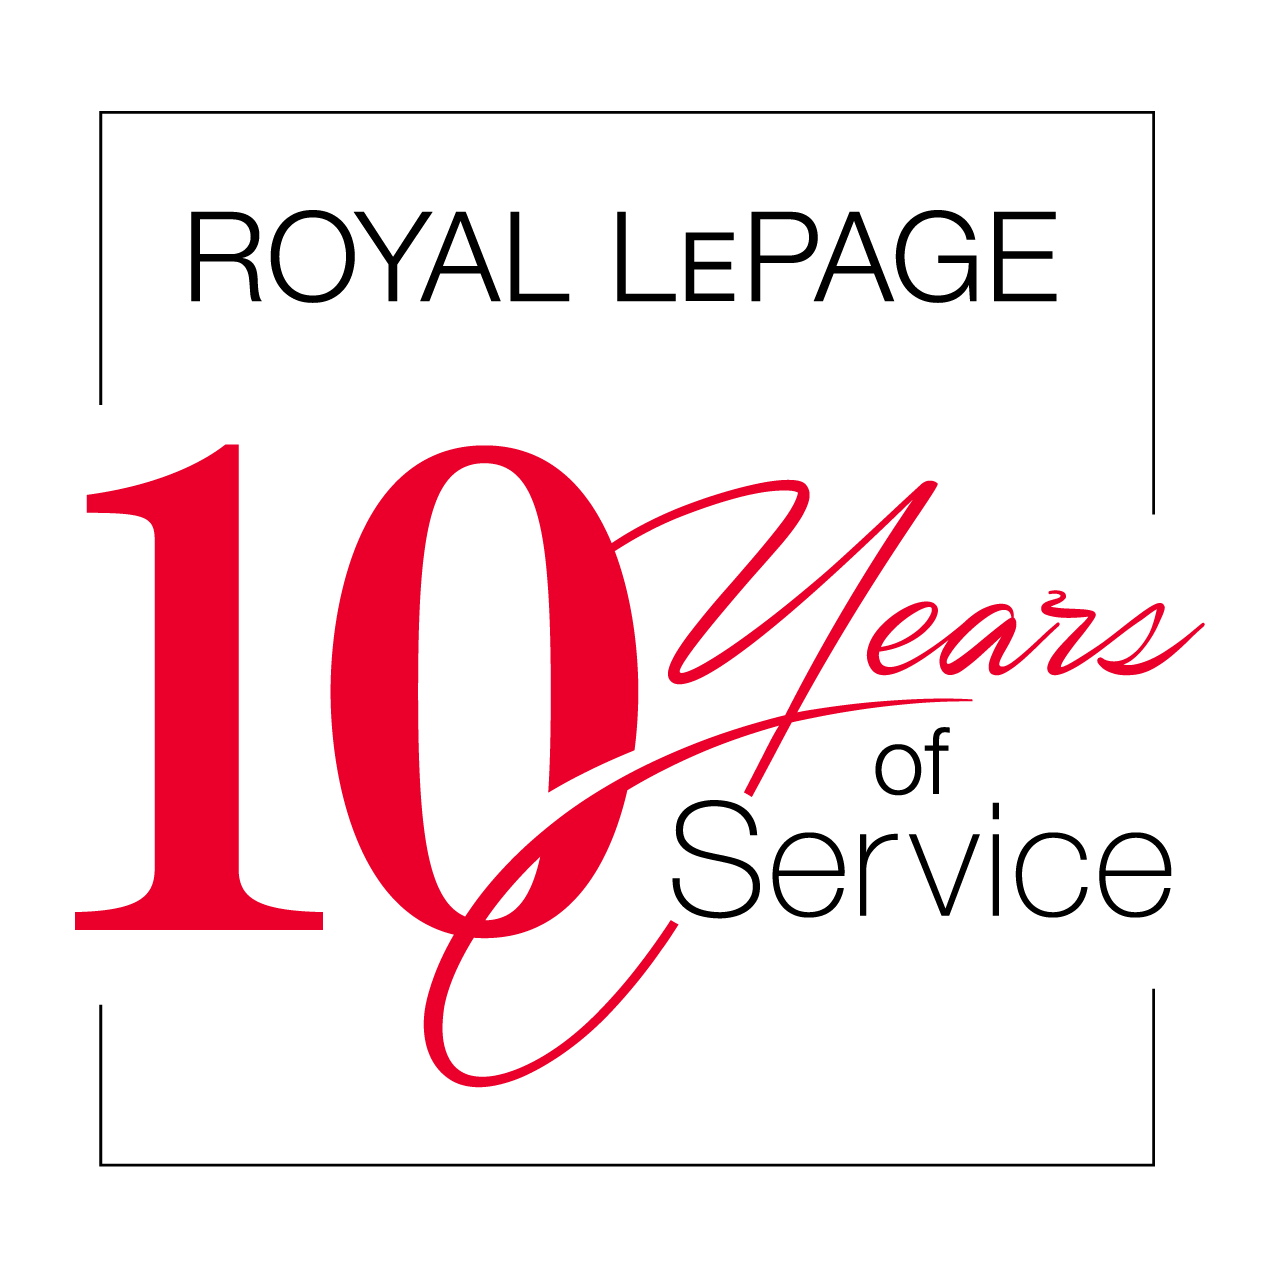 Years of Service - 10 Years